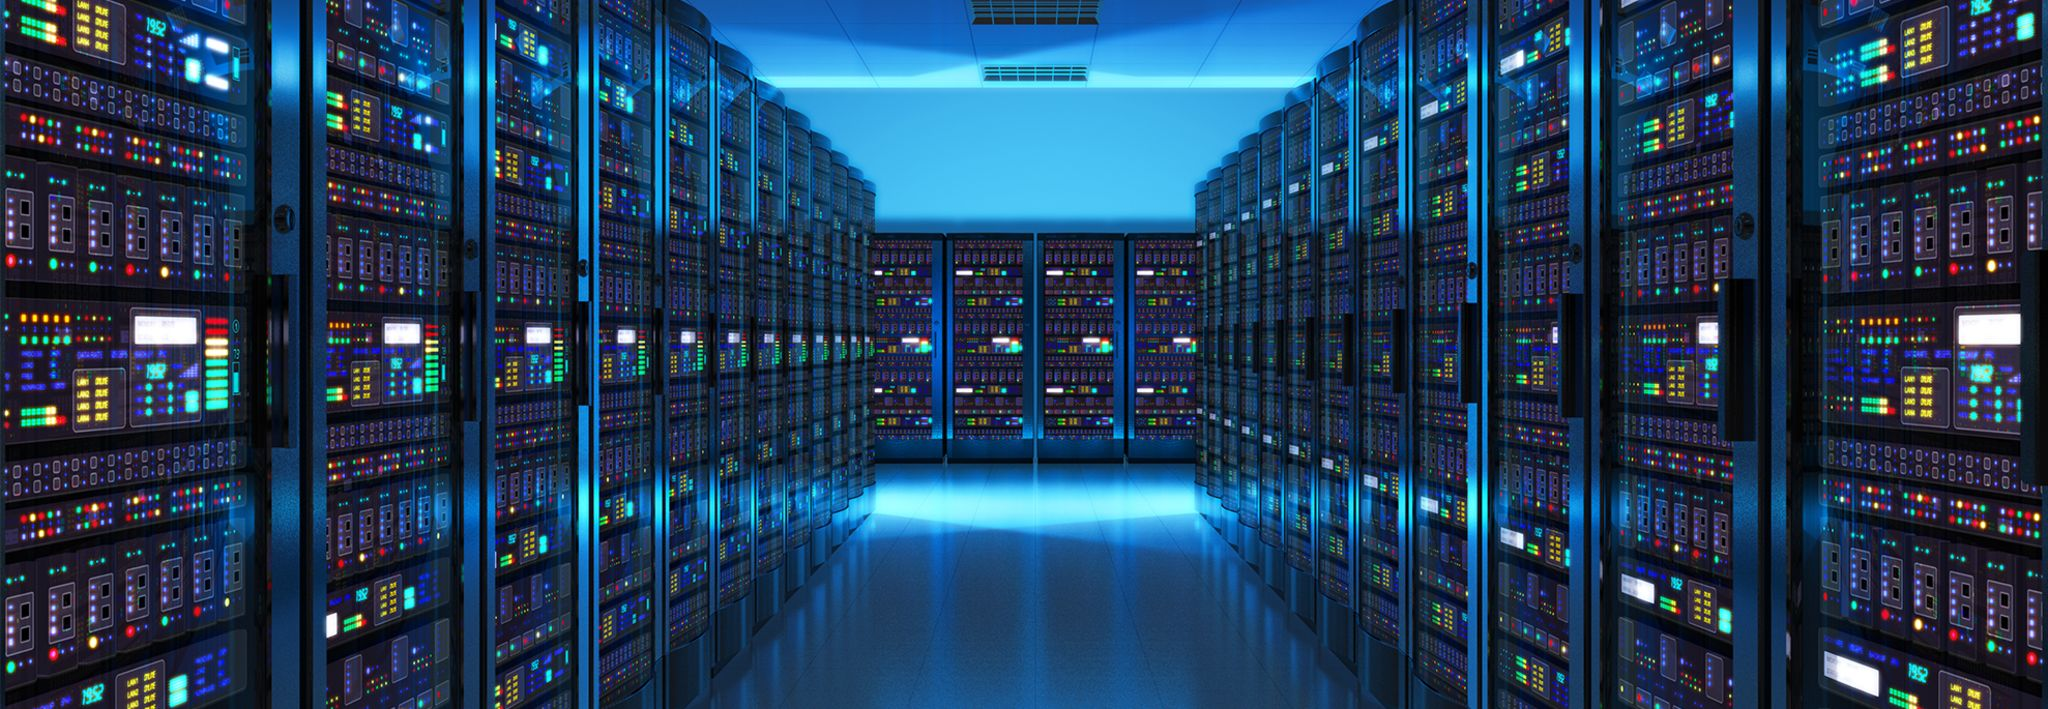 An information systems department is lined with computers and technology.